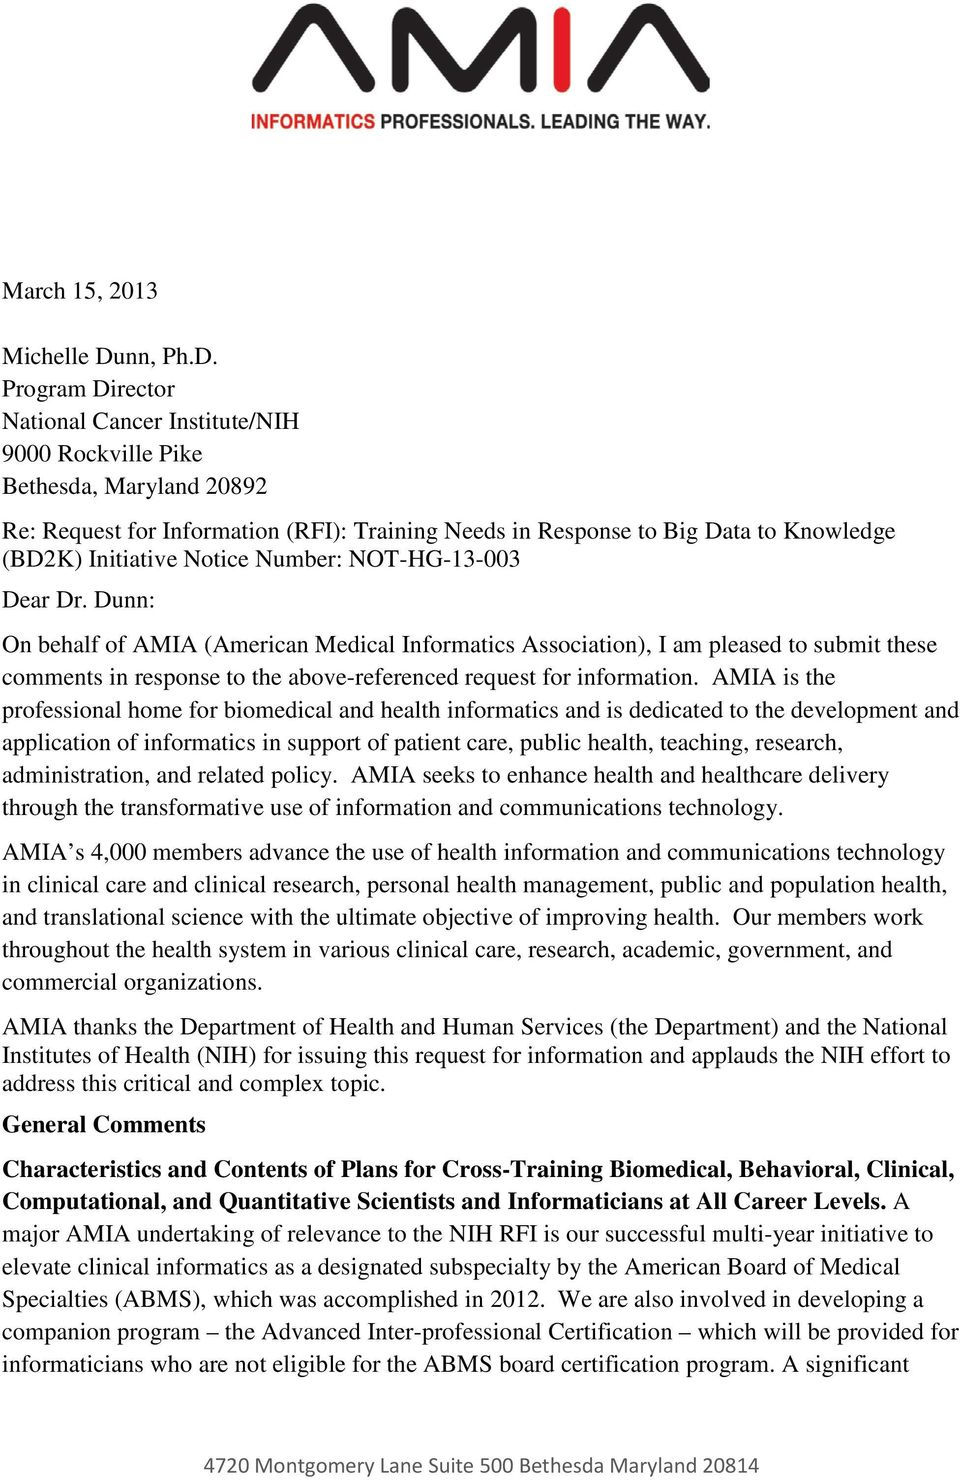 Program Director National Cancer Institute/NIH 9000 Rockville Pike Bethesda, Maryland 20892 Re: Request for Information (RFI): Training Needs in Response to Big Data to Knowledge (BD2K) Initiative